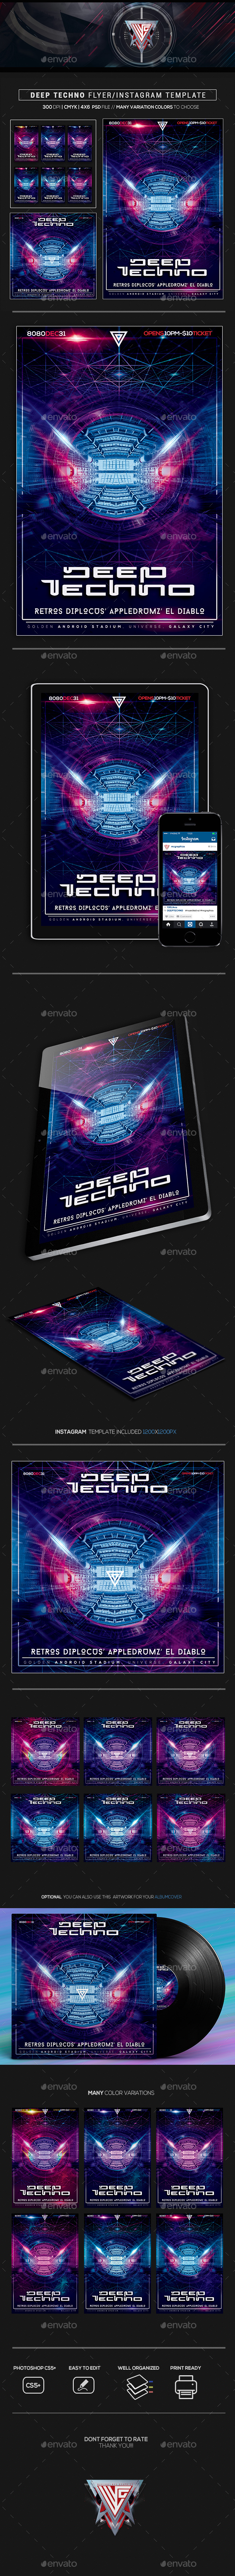 Deep Techno Flyer/Instagram Template - Flyers Print Templates